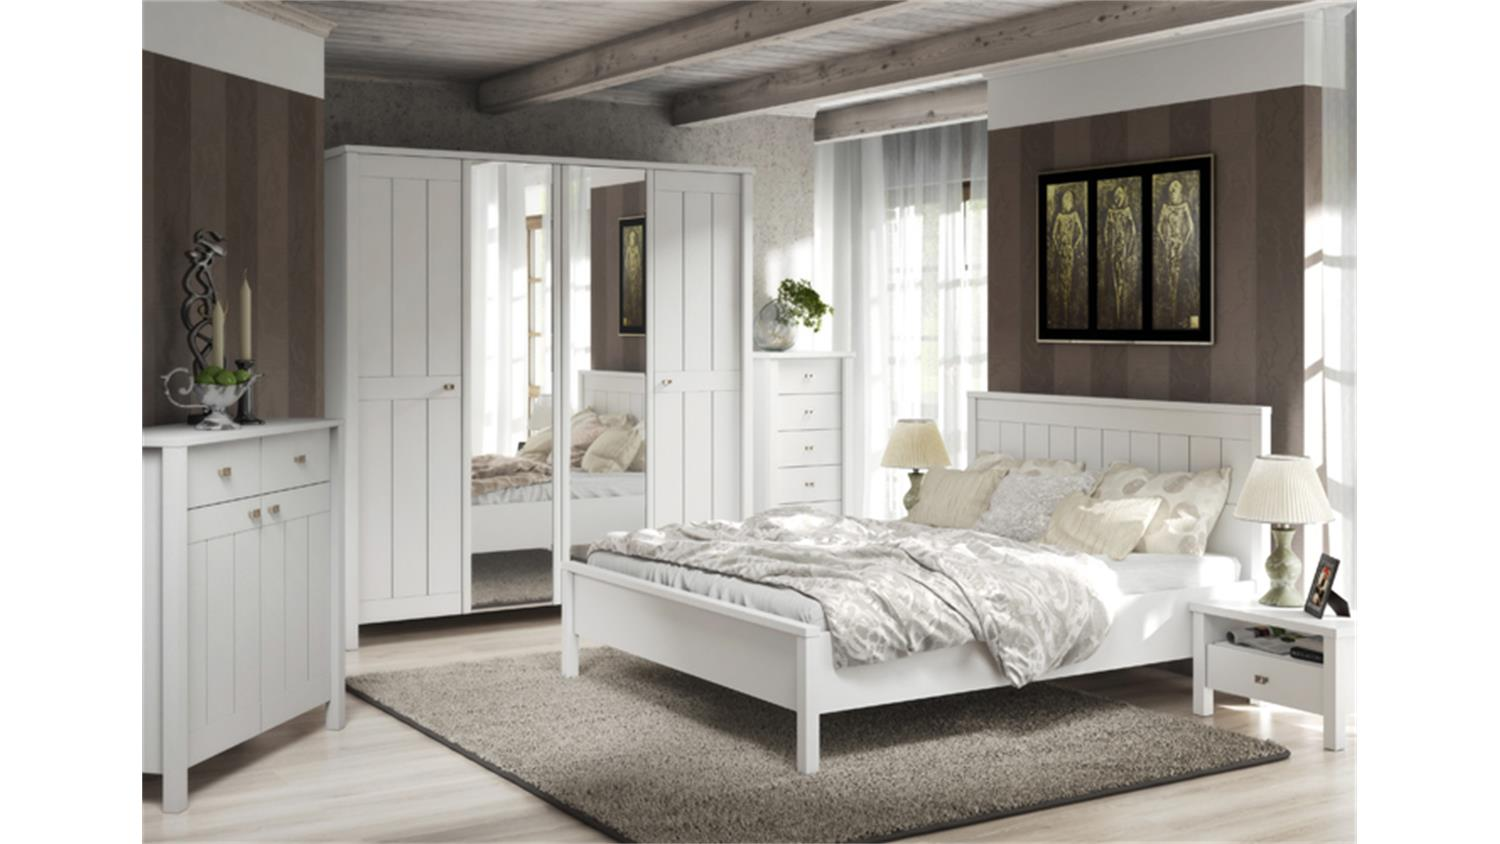 schlafzimmer ideen wandgestaltung. Black Bedroom Furniture Sets. Home Design Ideas